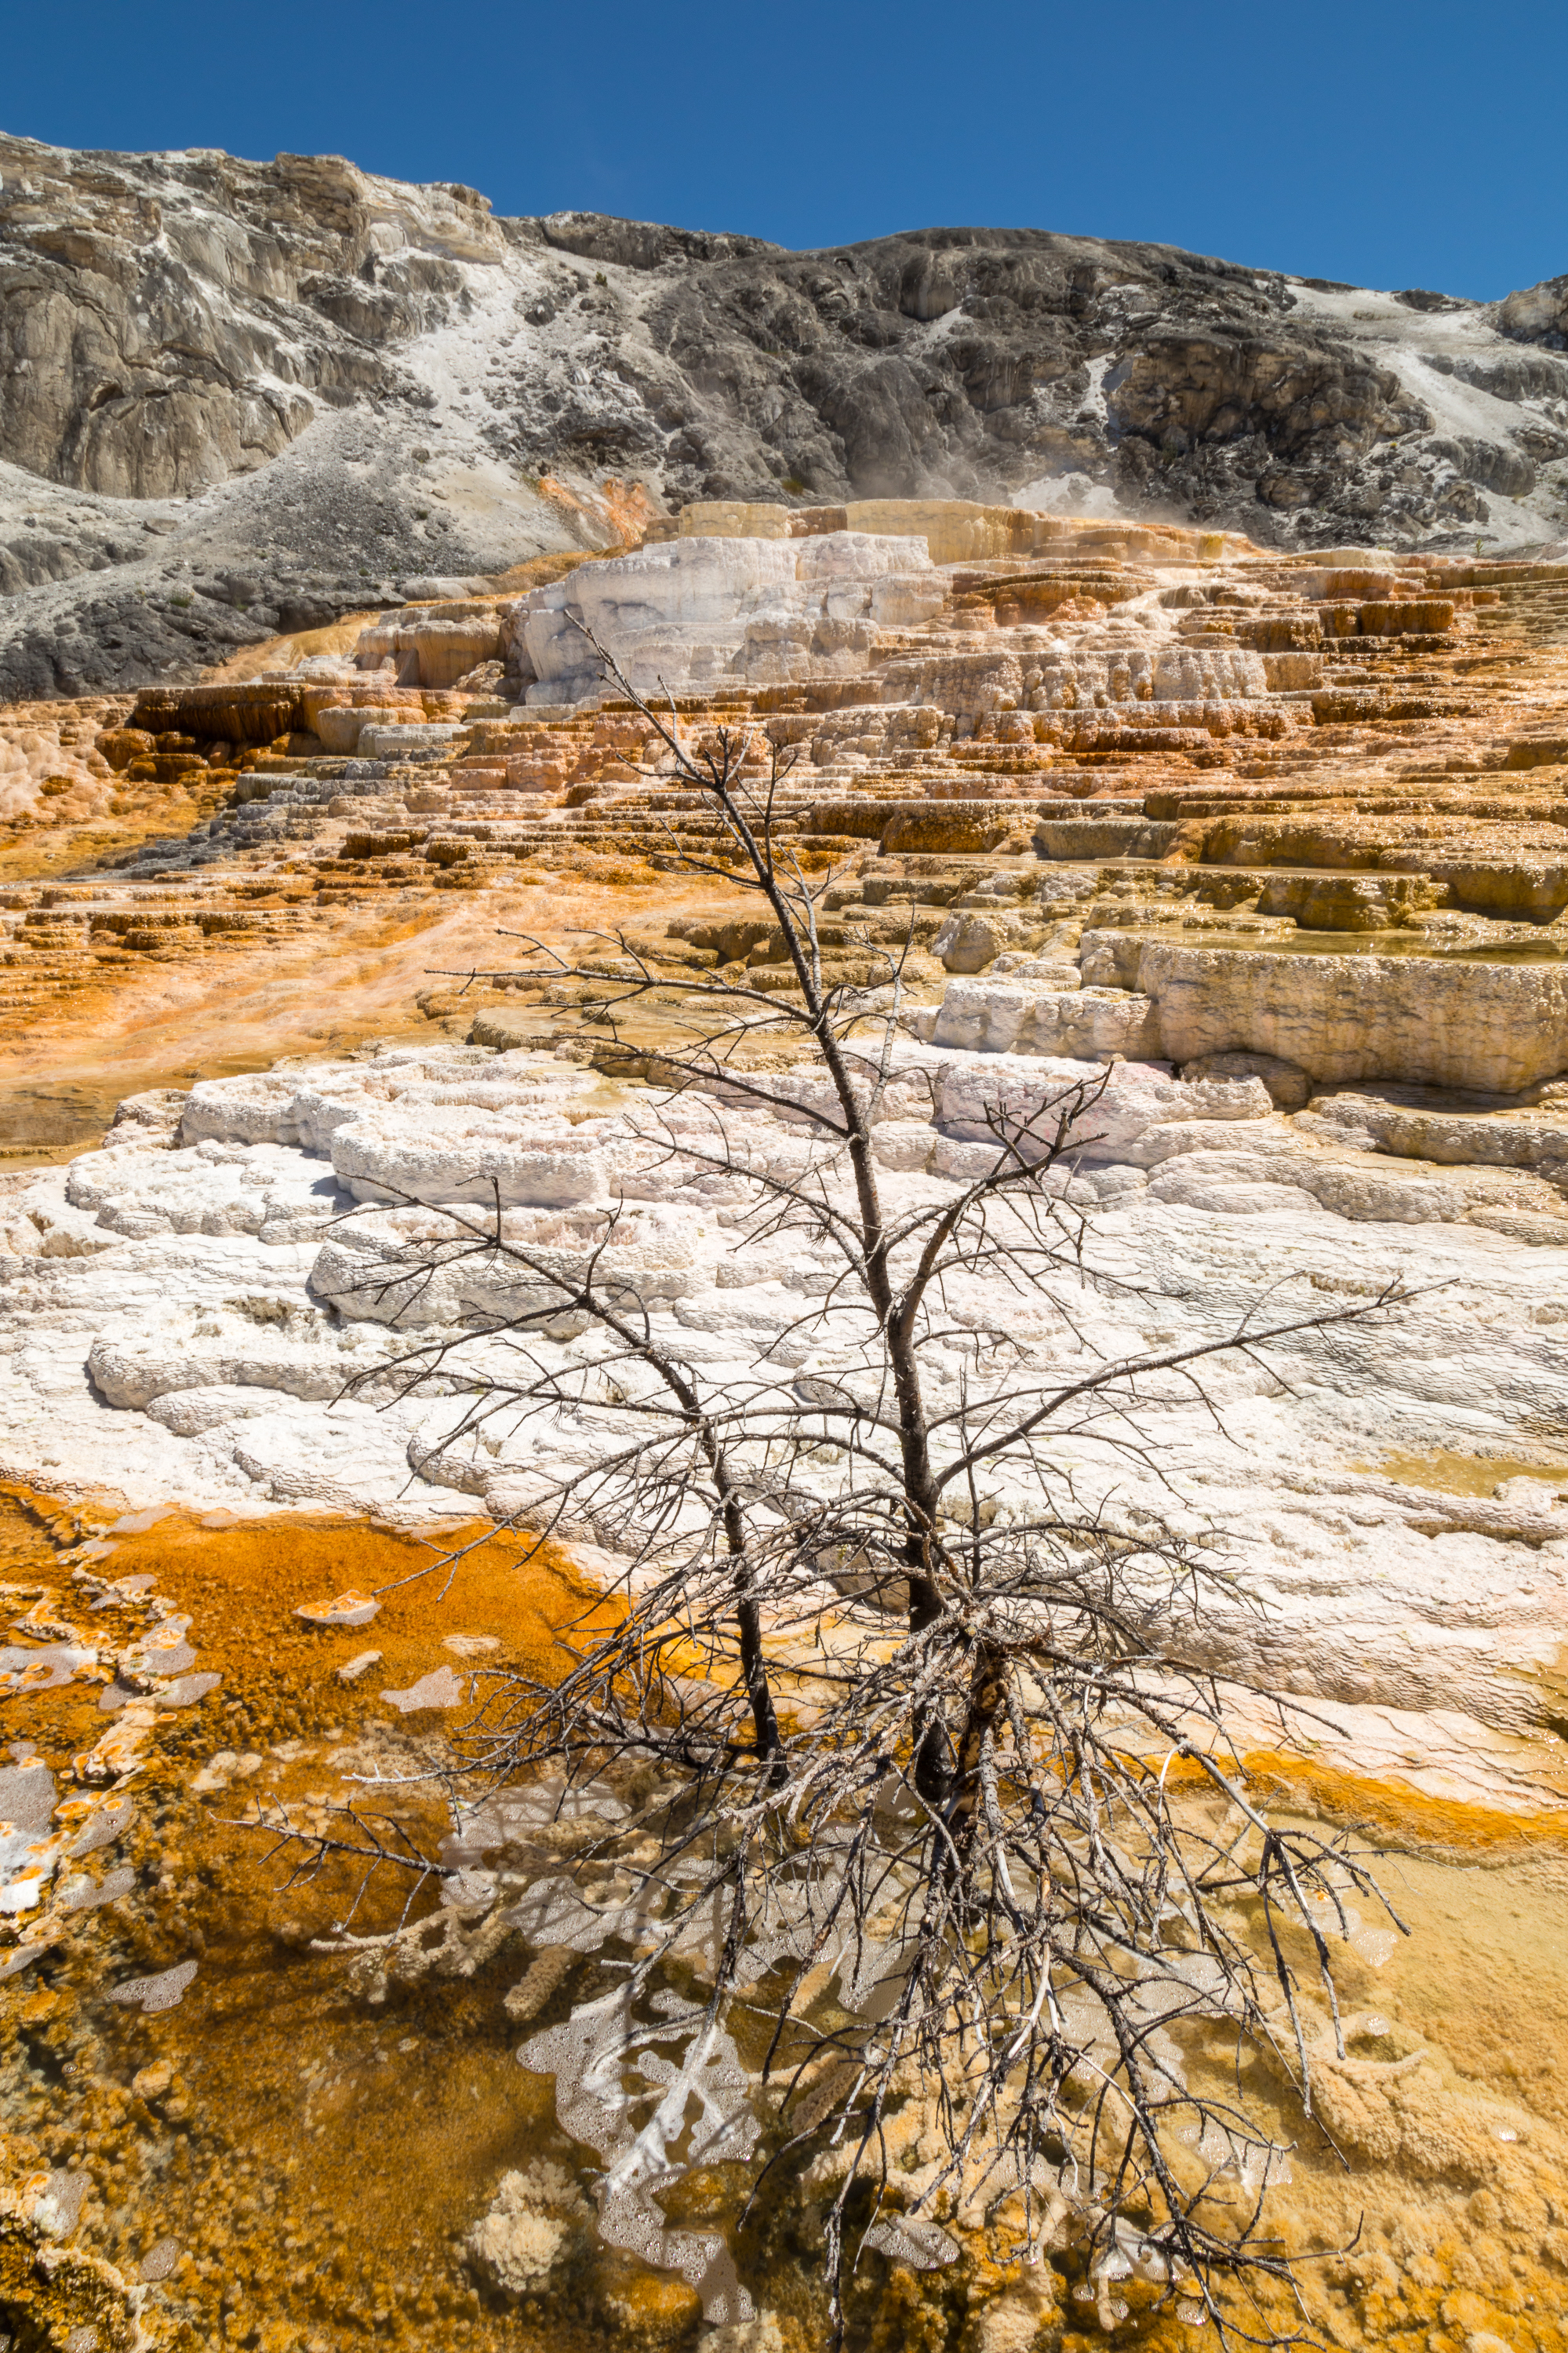 Mammoth Hot Springs, Yellowstone National Park, Image # 7313